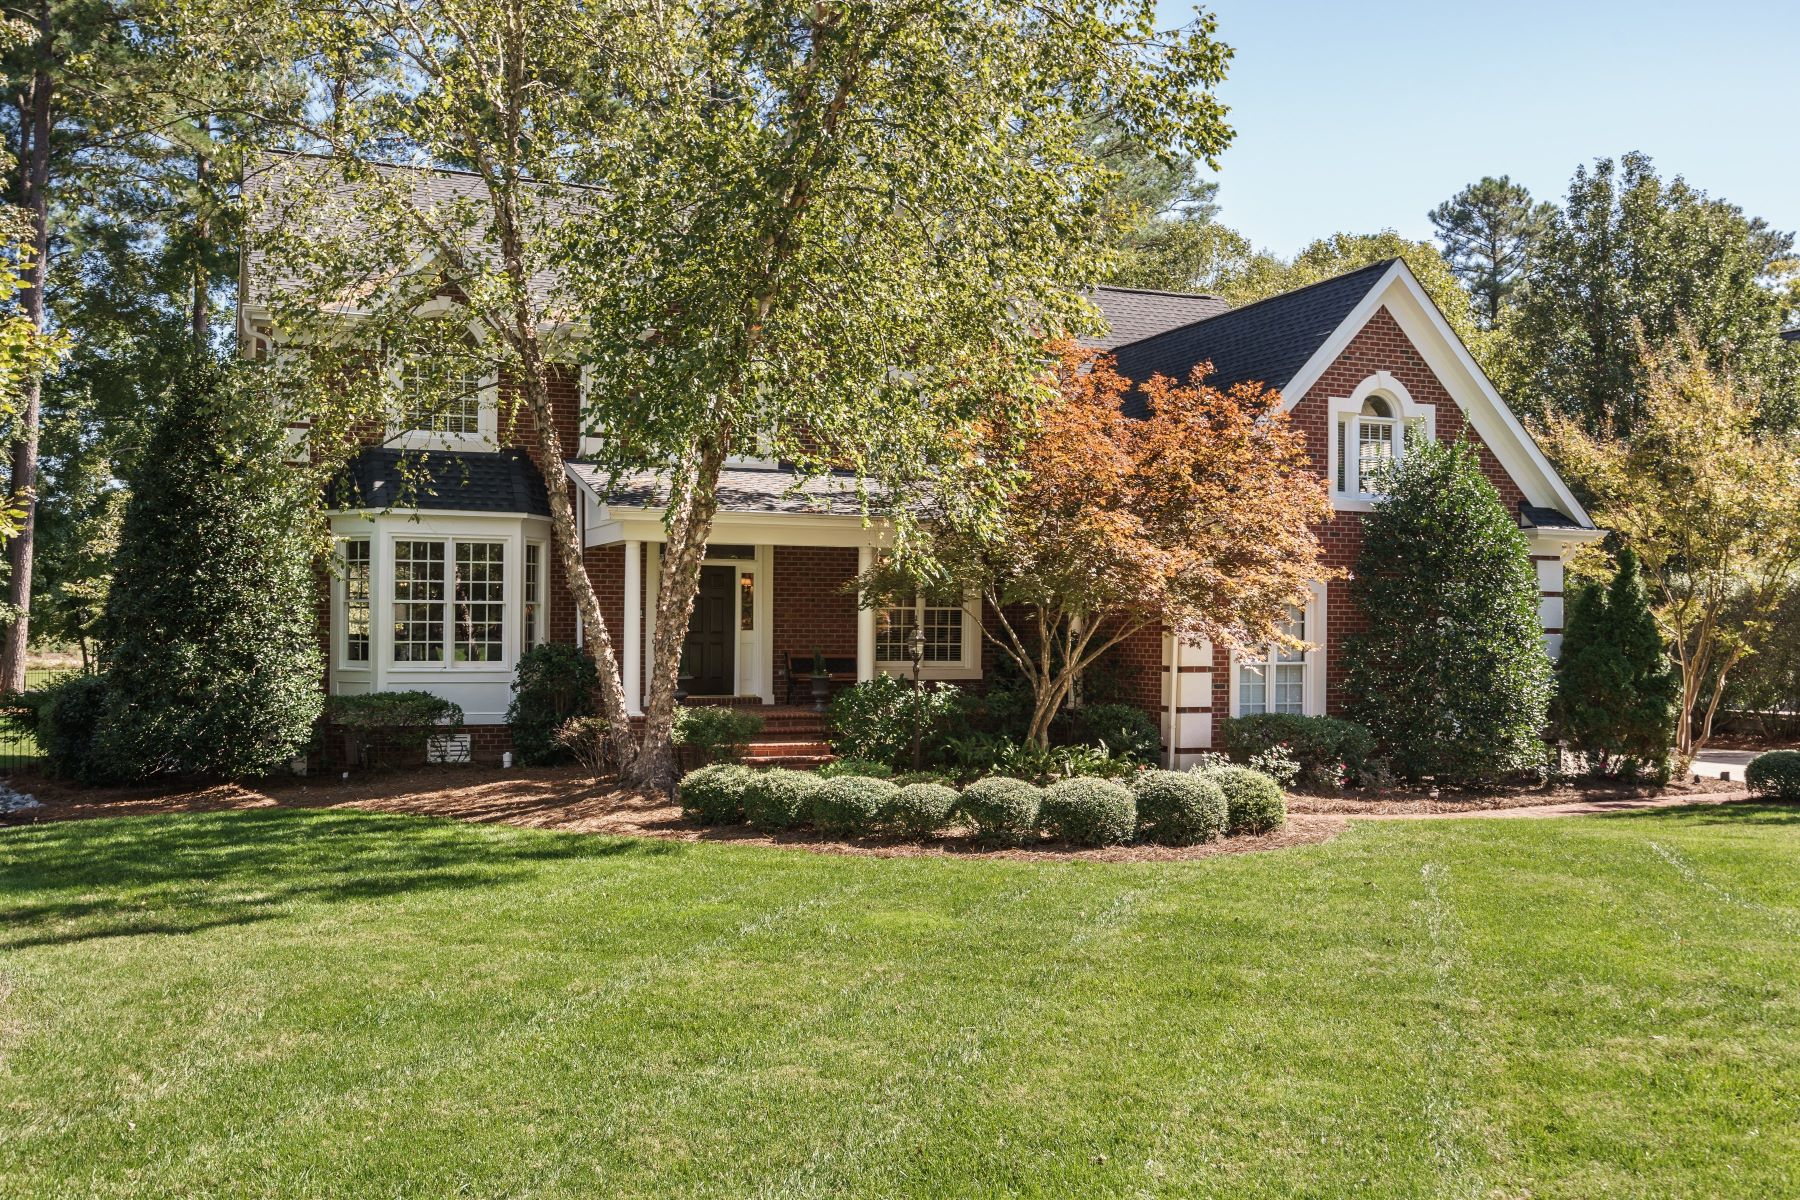 Single Family Home for Sale at Preston Country Club 104 Fairway Valley Court Cary, North Carolina, 27513 United StatesIn/Around: Durham, Raleigh, Chapel Hill